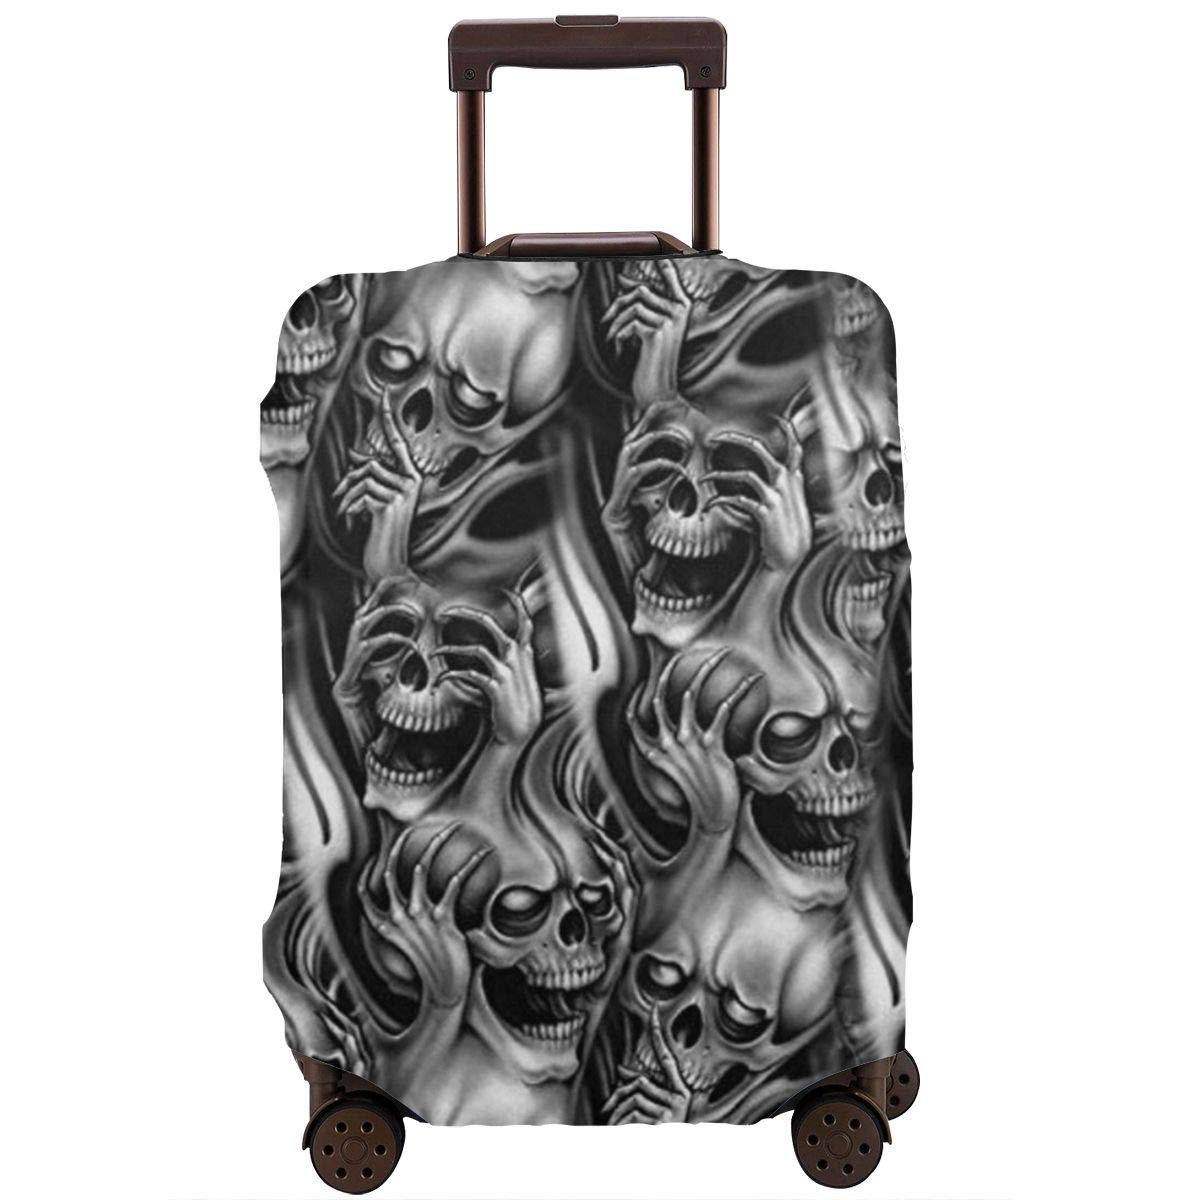 Travel Suitcase Protector Zipper Suit Case Luggage Cover Washable 3D Printing Baggage Covers Sugar Skulls Day Of The Dead Fit 18 To 32 Inch